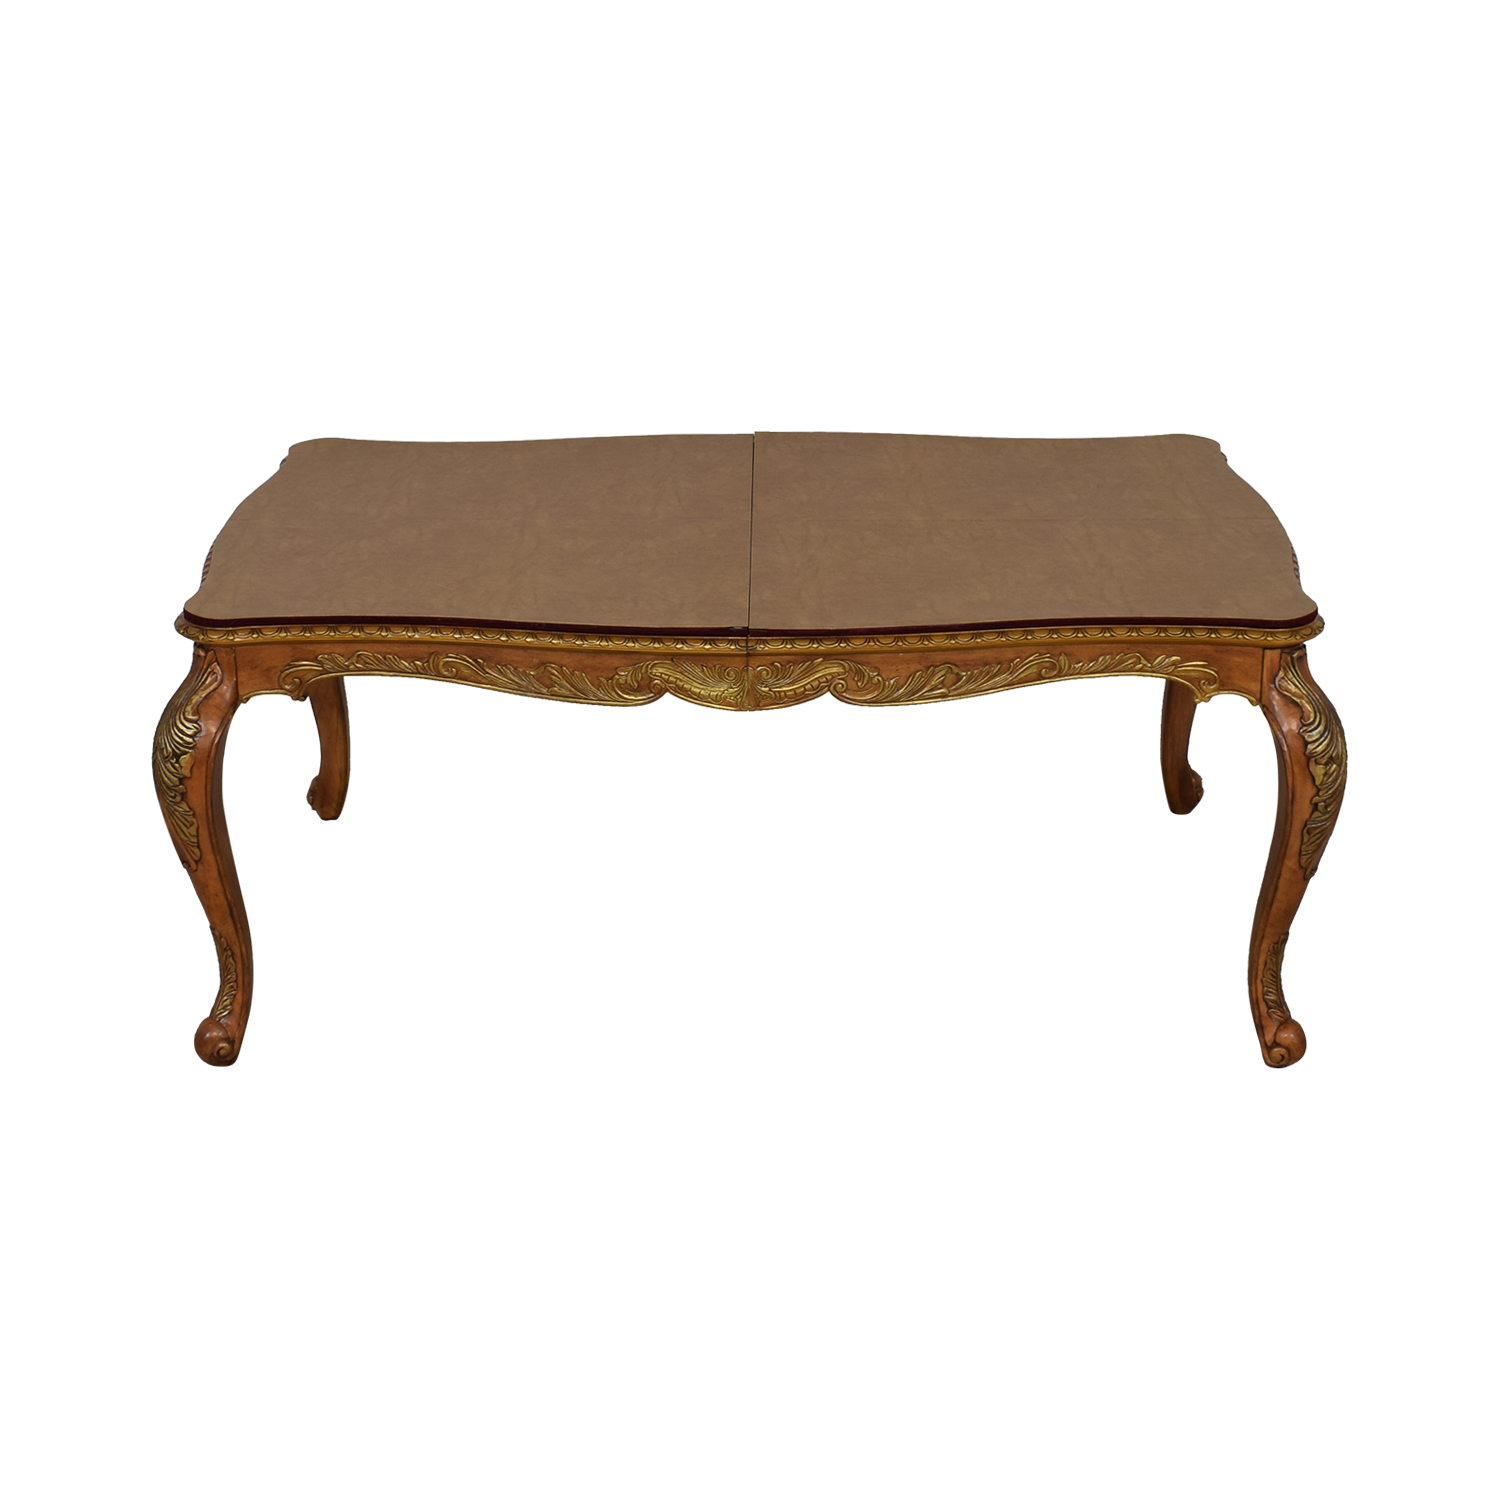 buy Raymour & Flanigan Raymour & Flanigan Extendable Dining Table online